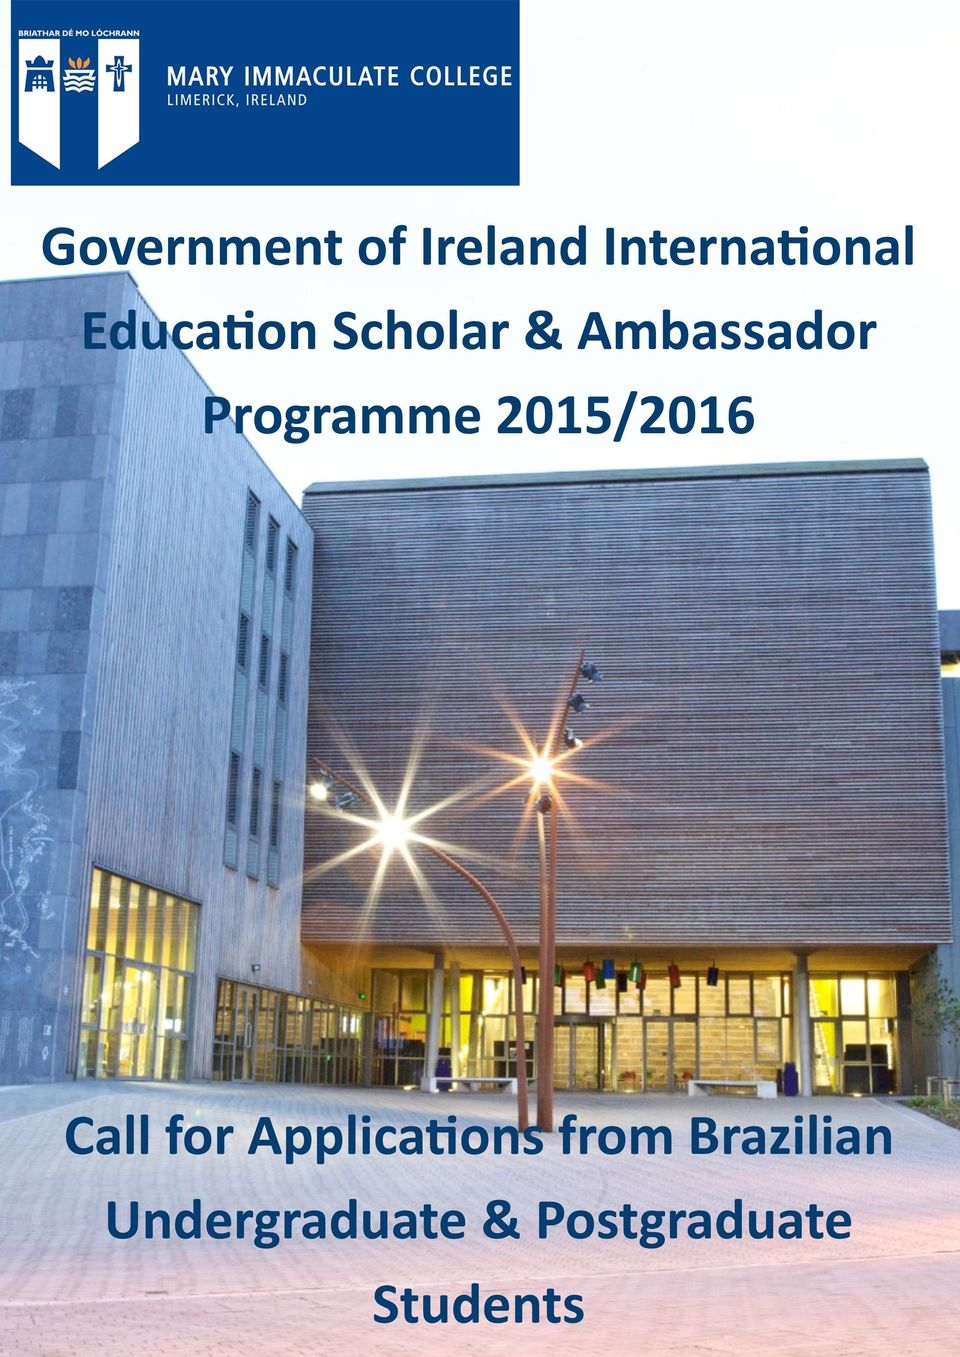 2015/2016 Call for Applications from